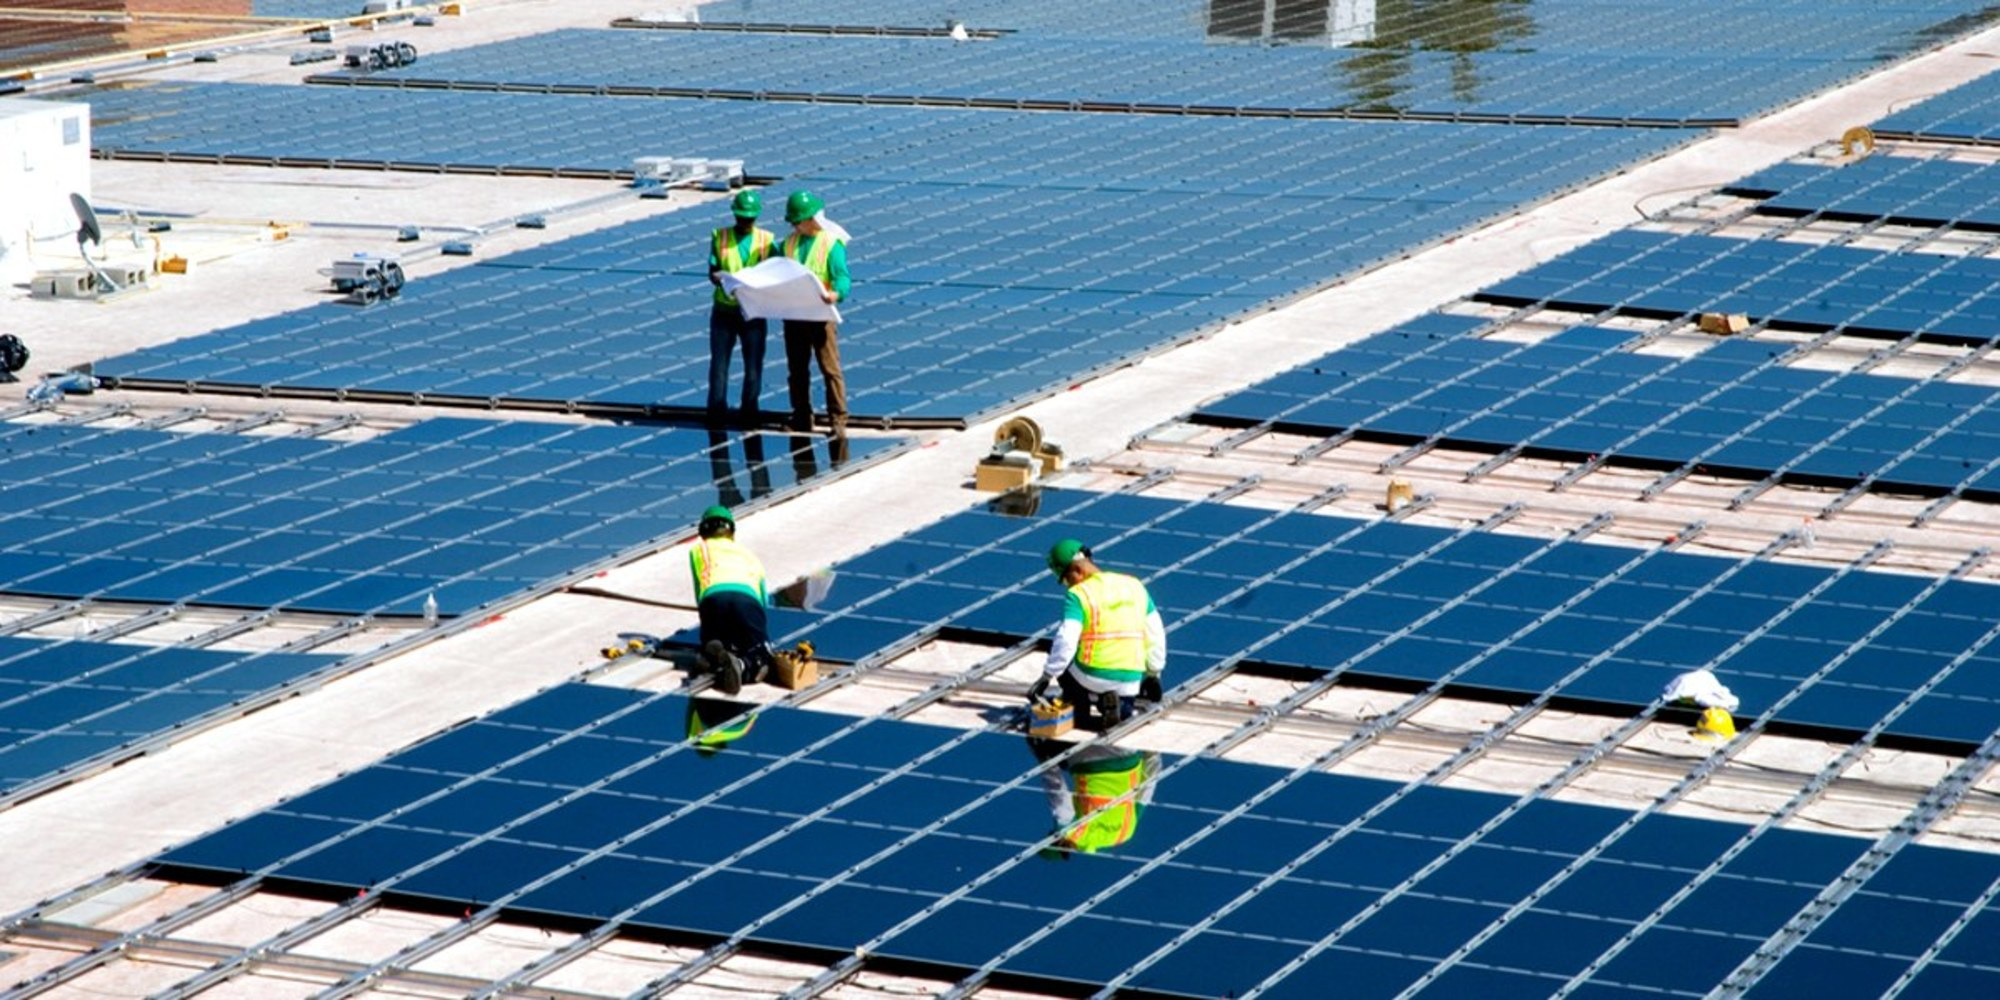 Solar energy creates more employment versus oil, coal and gas in the U.S.